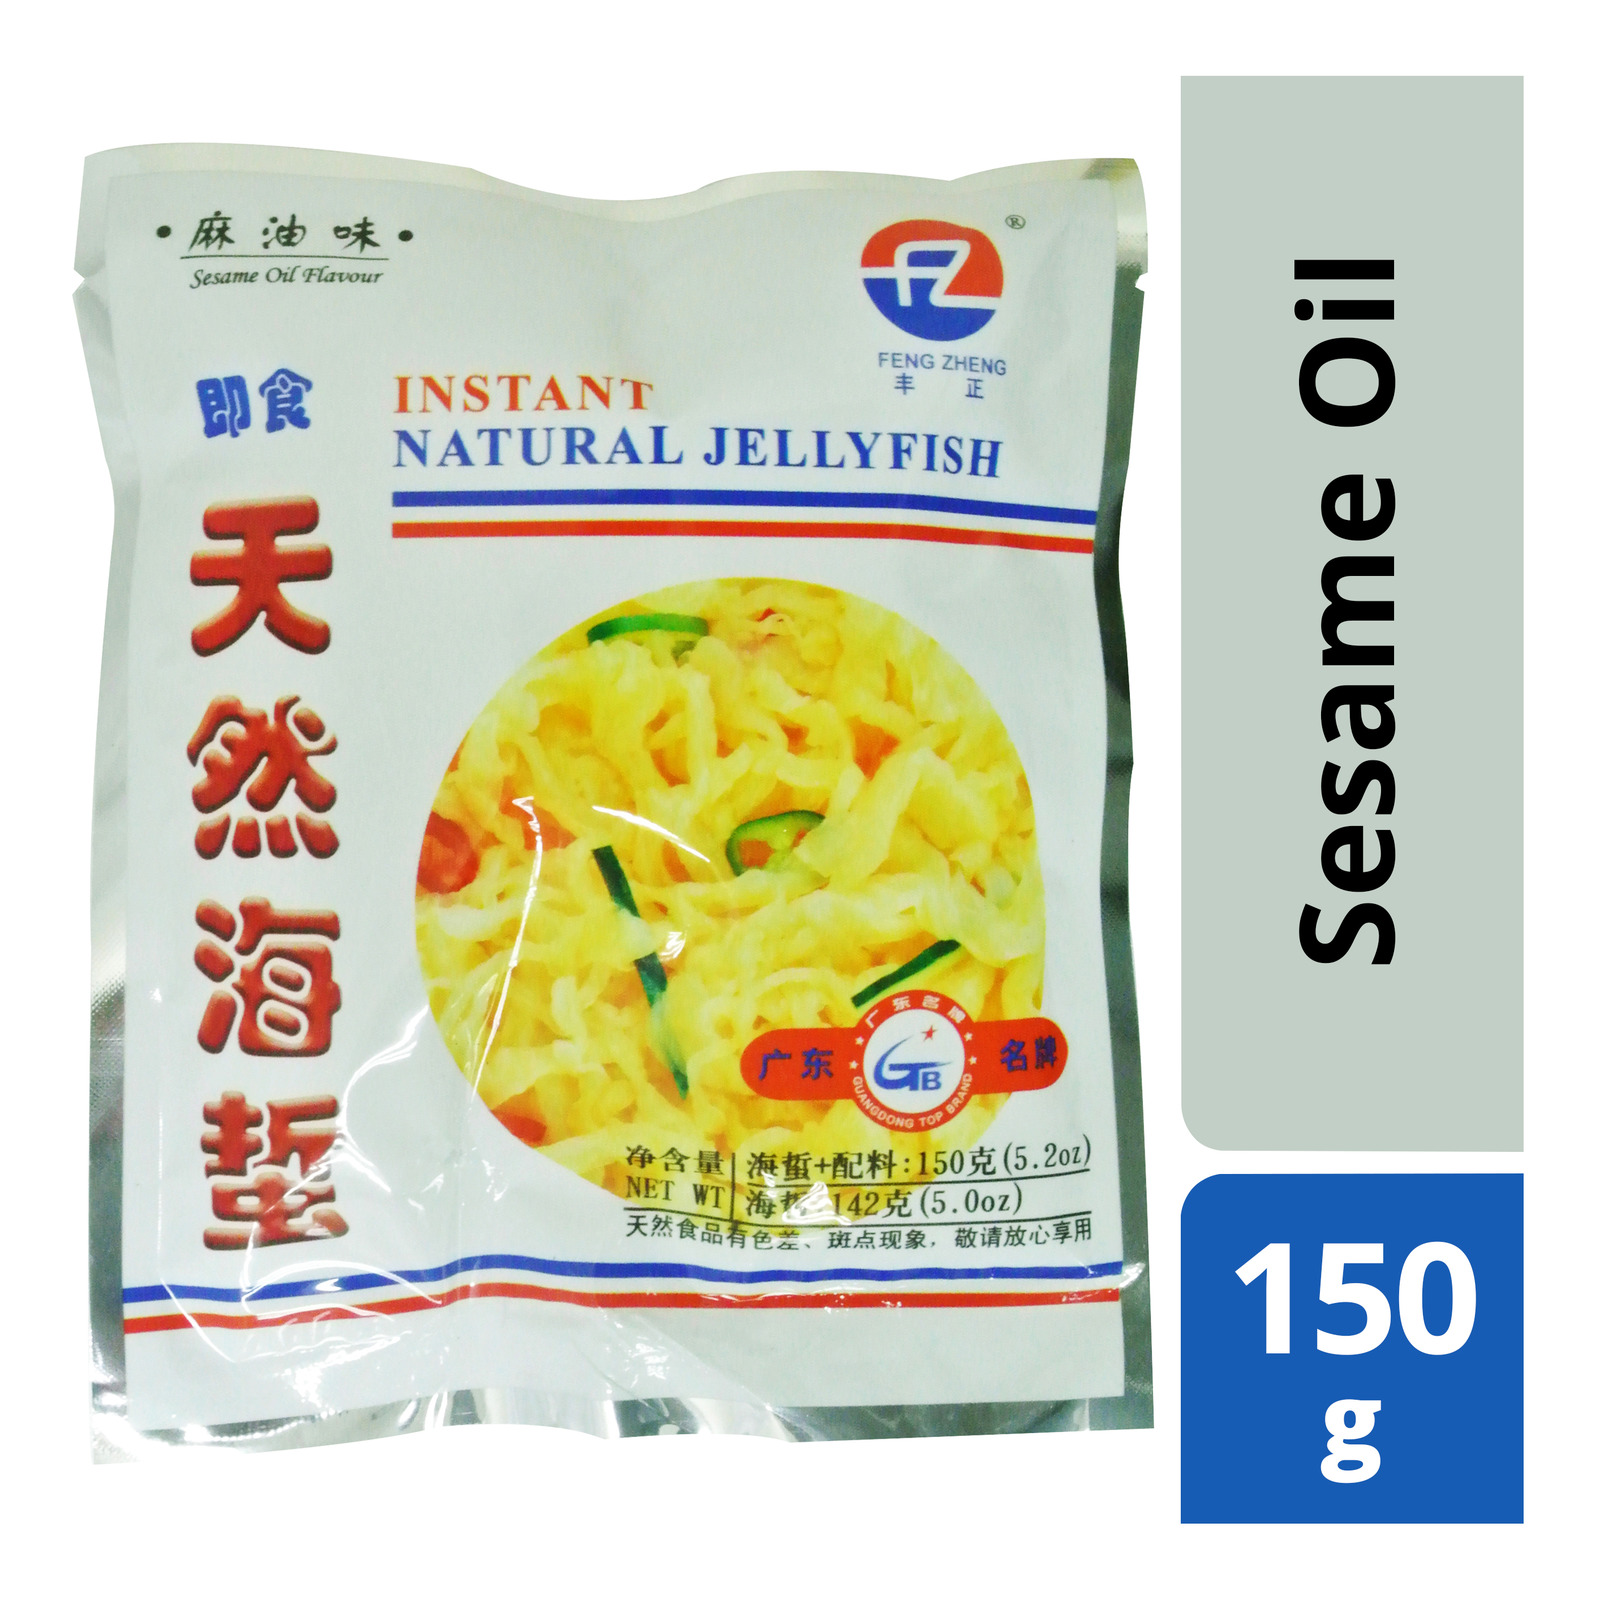 Feng Zheng Instant Natural Jellyfish - Sesame Oil